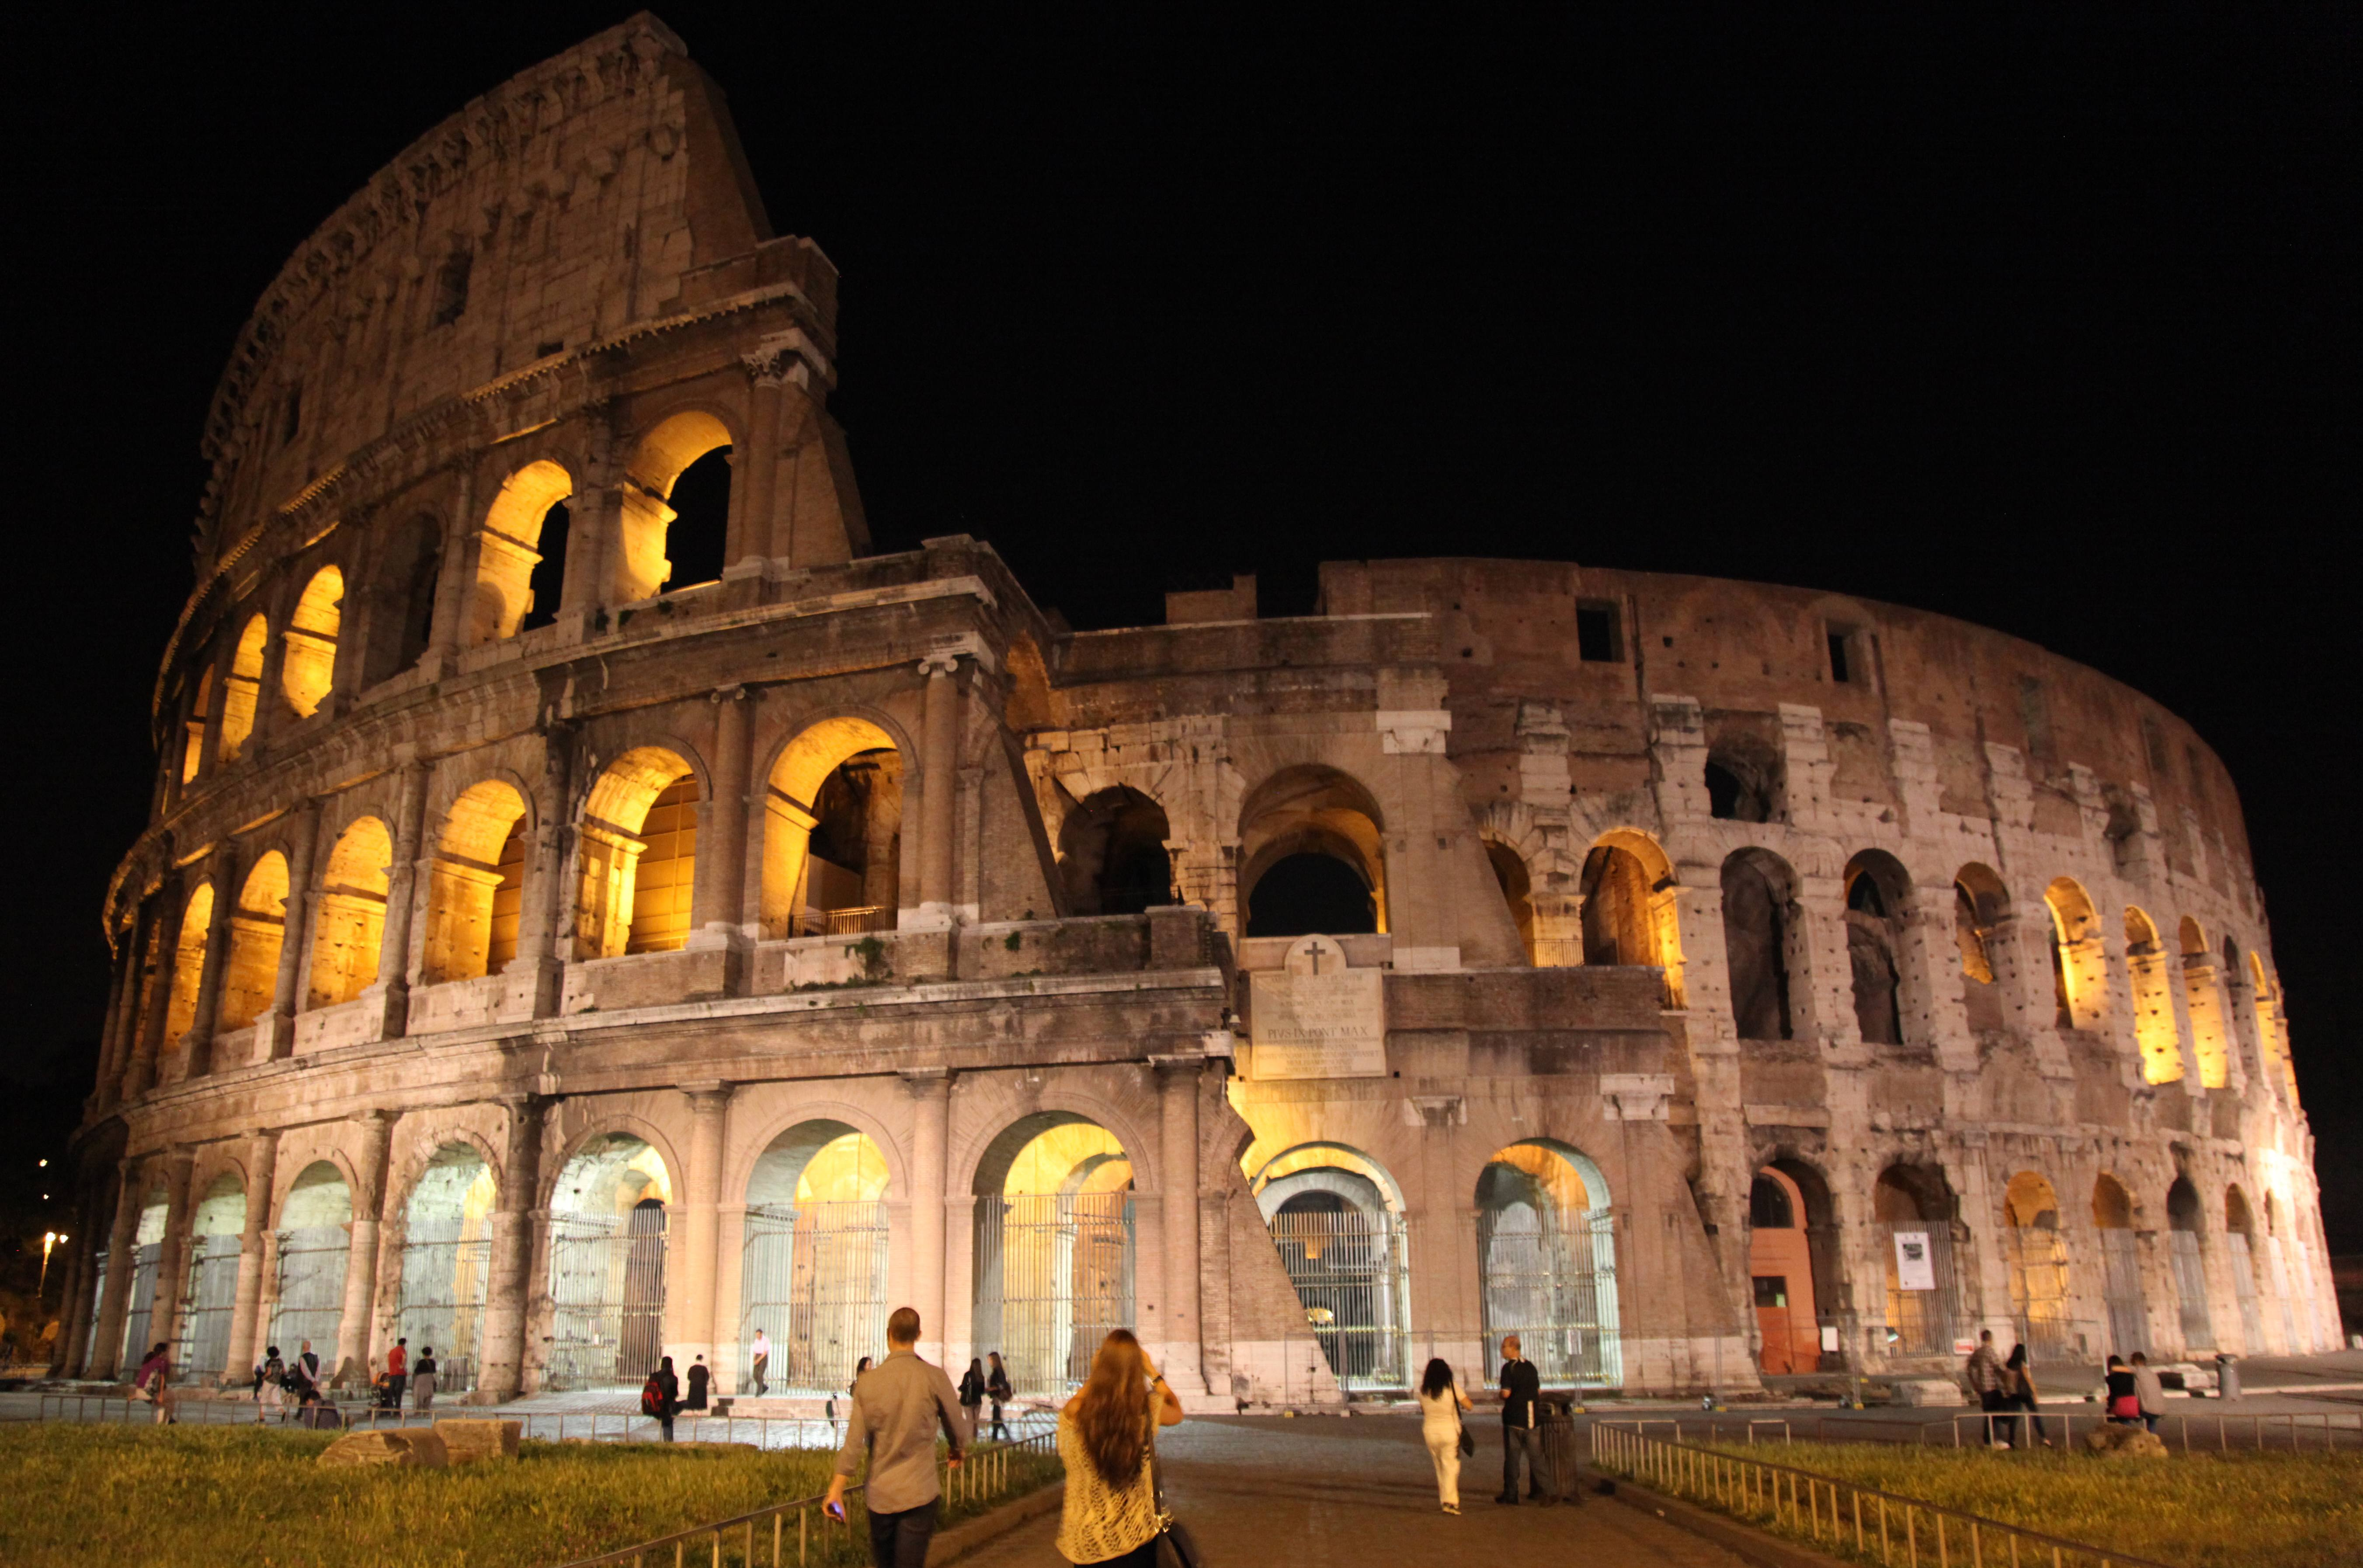 Colosseum Night Tour & Ticket - Expert Guides - City Wonders